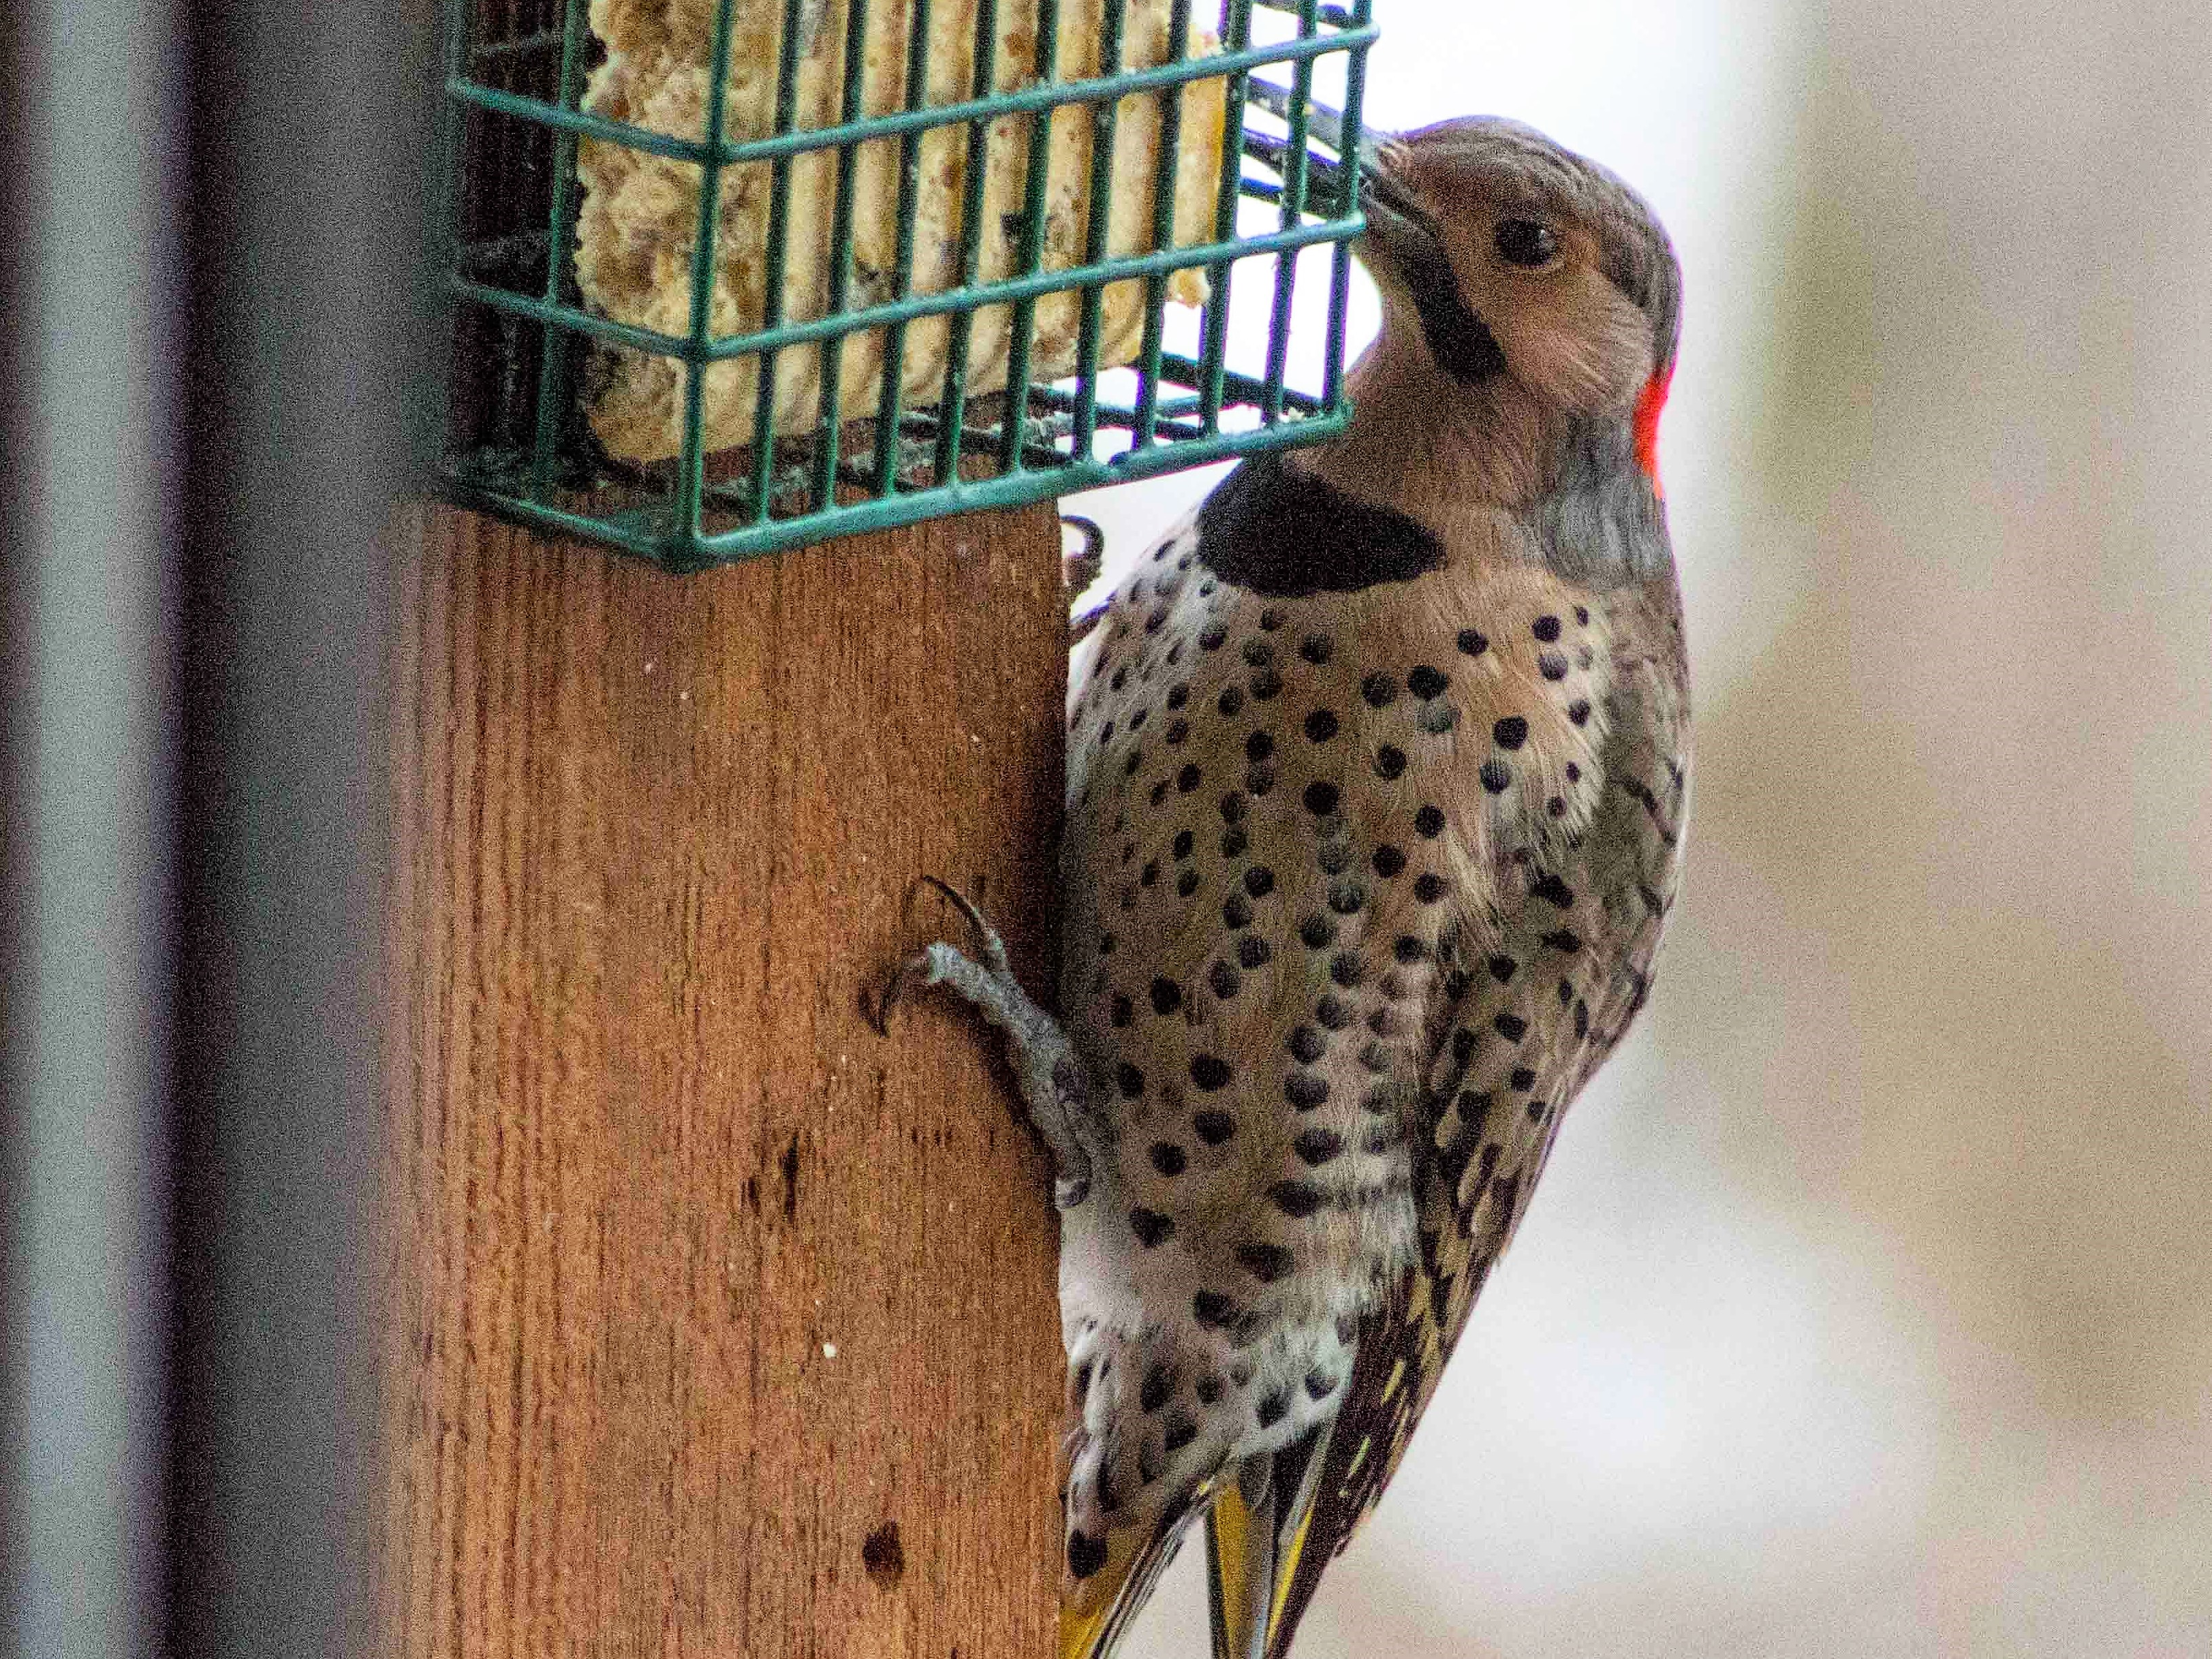 Midwinter Flickers and Colorful Woodpeckers